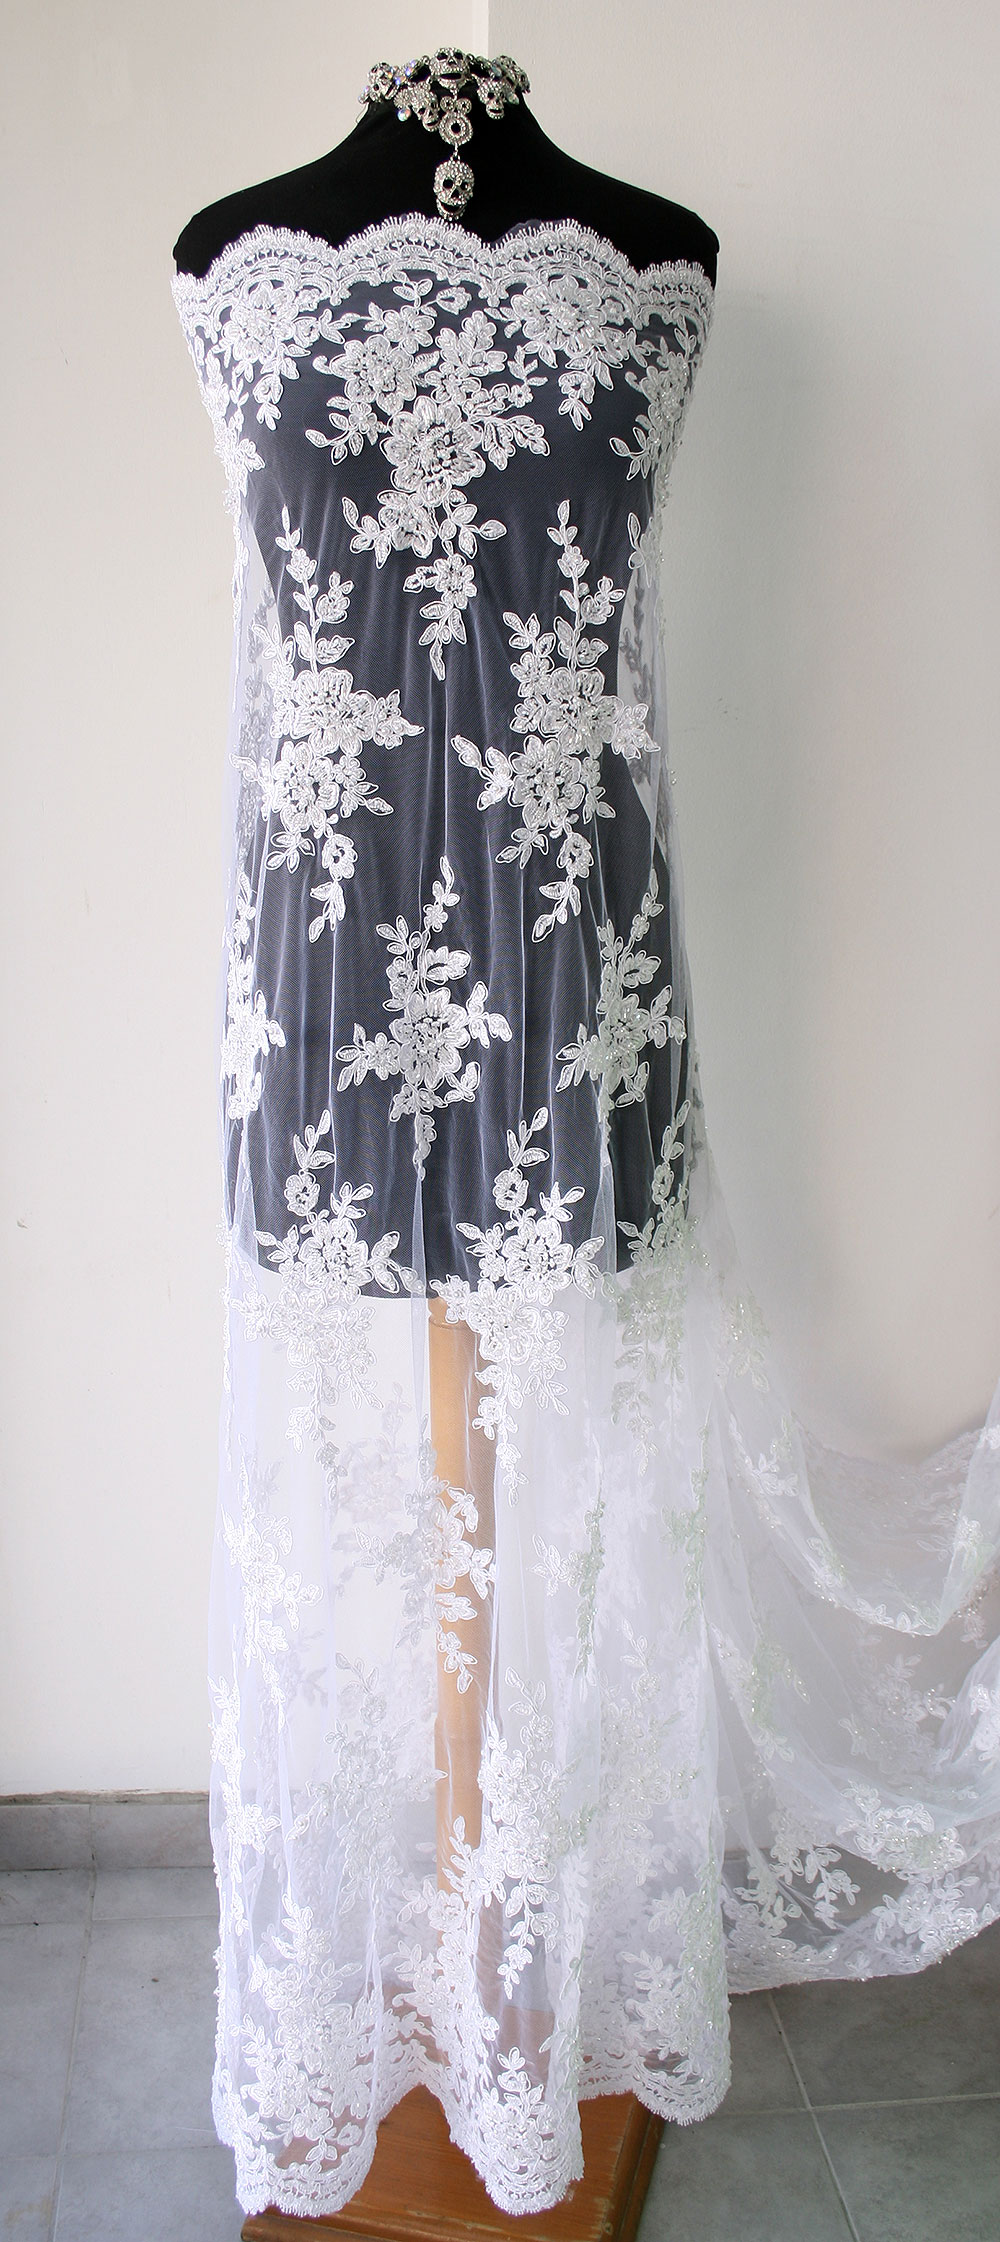 White Bridal Lace Fabric Tulle Floral Embroidery Pearls